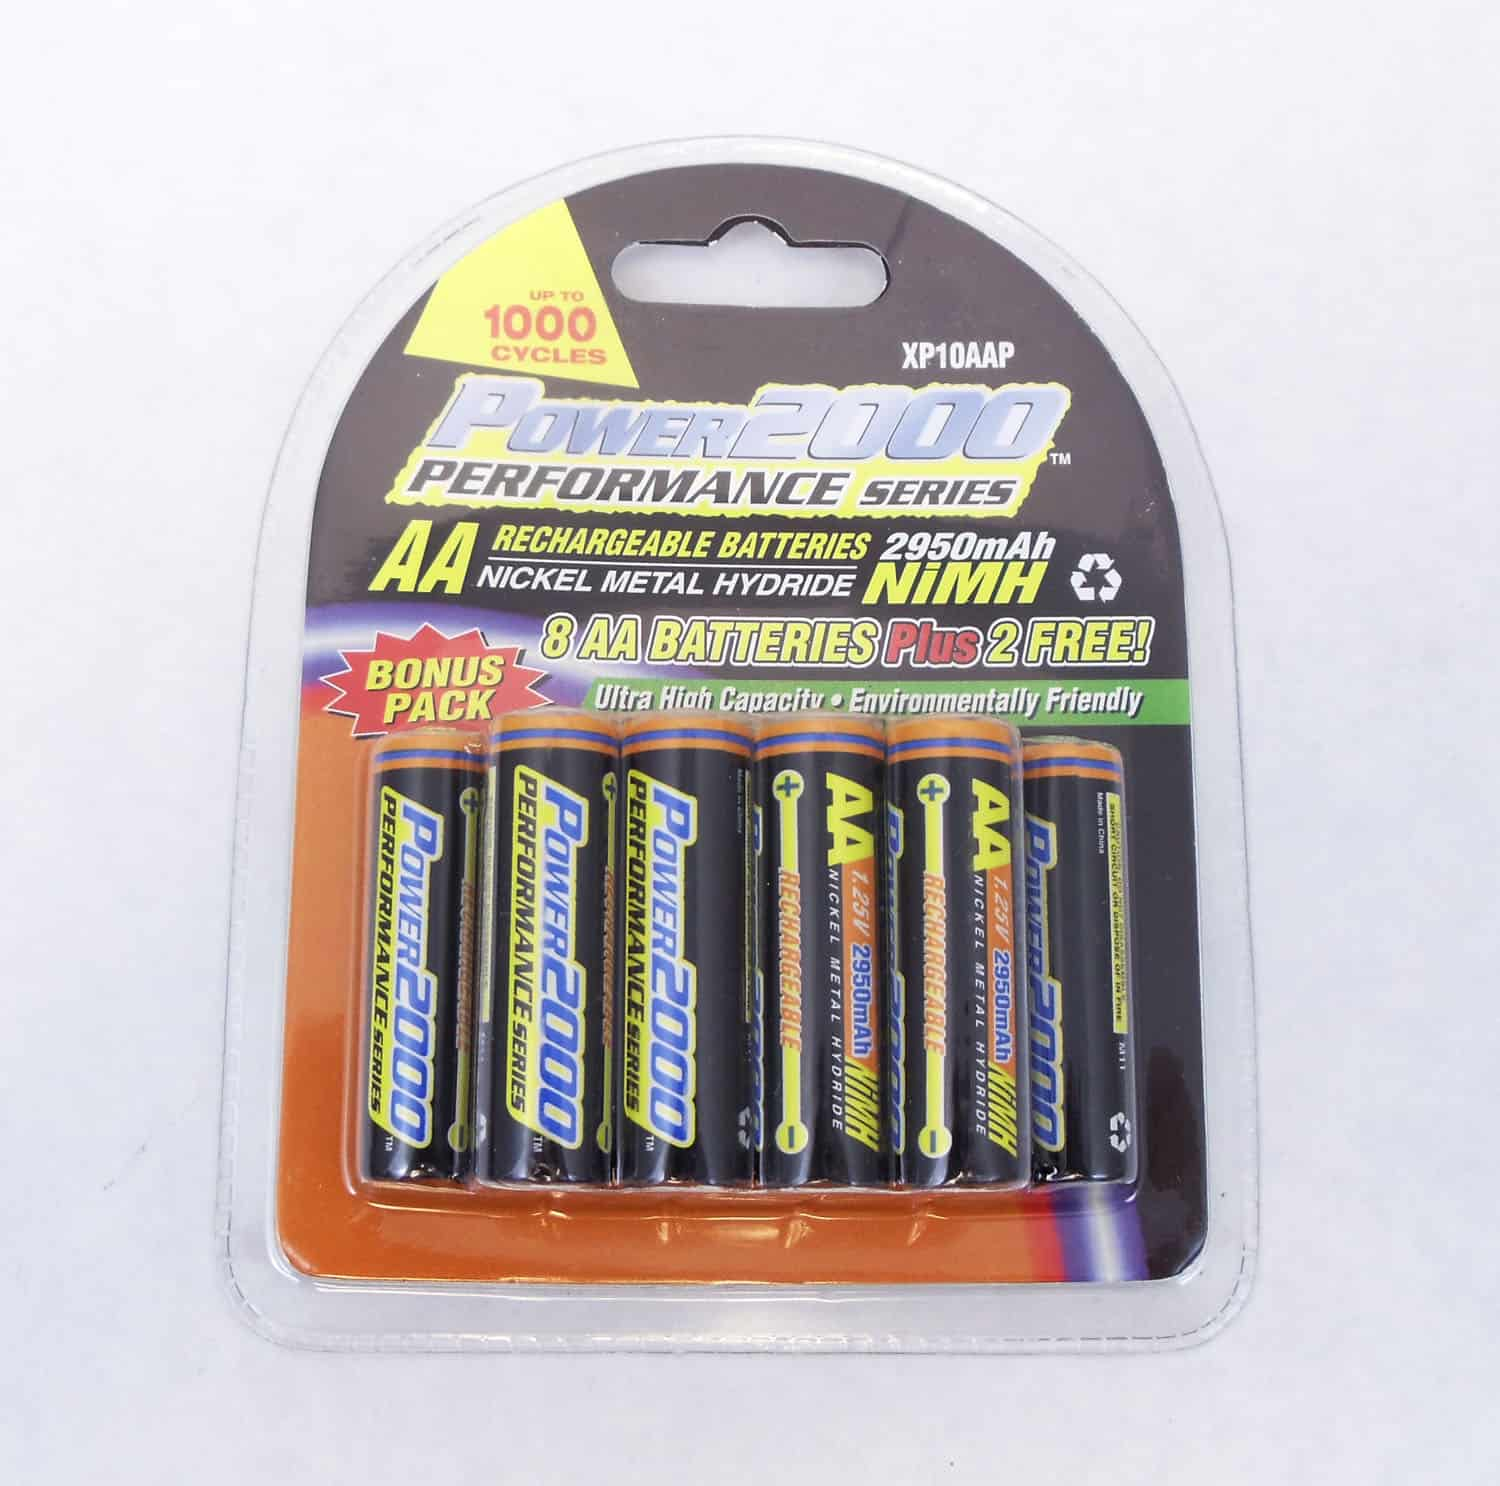 XP10AA - Power2000 Performance Series Rechargeable Batteries